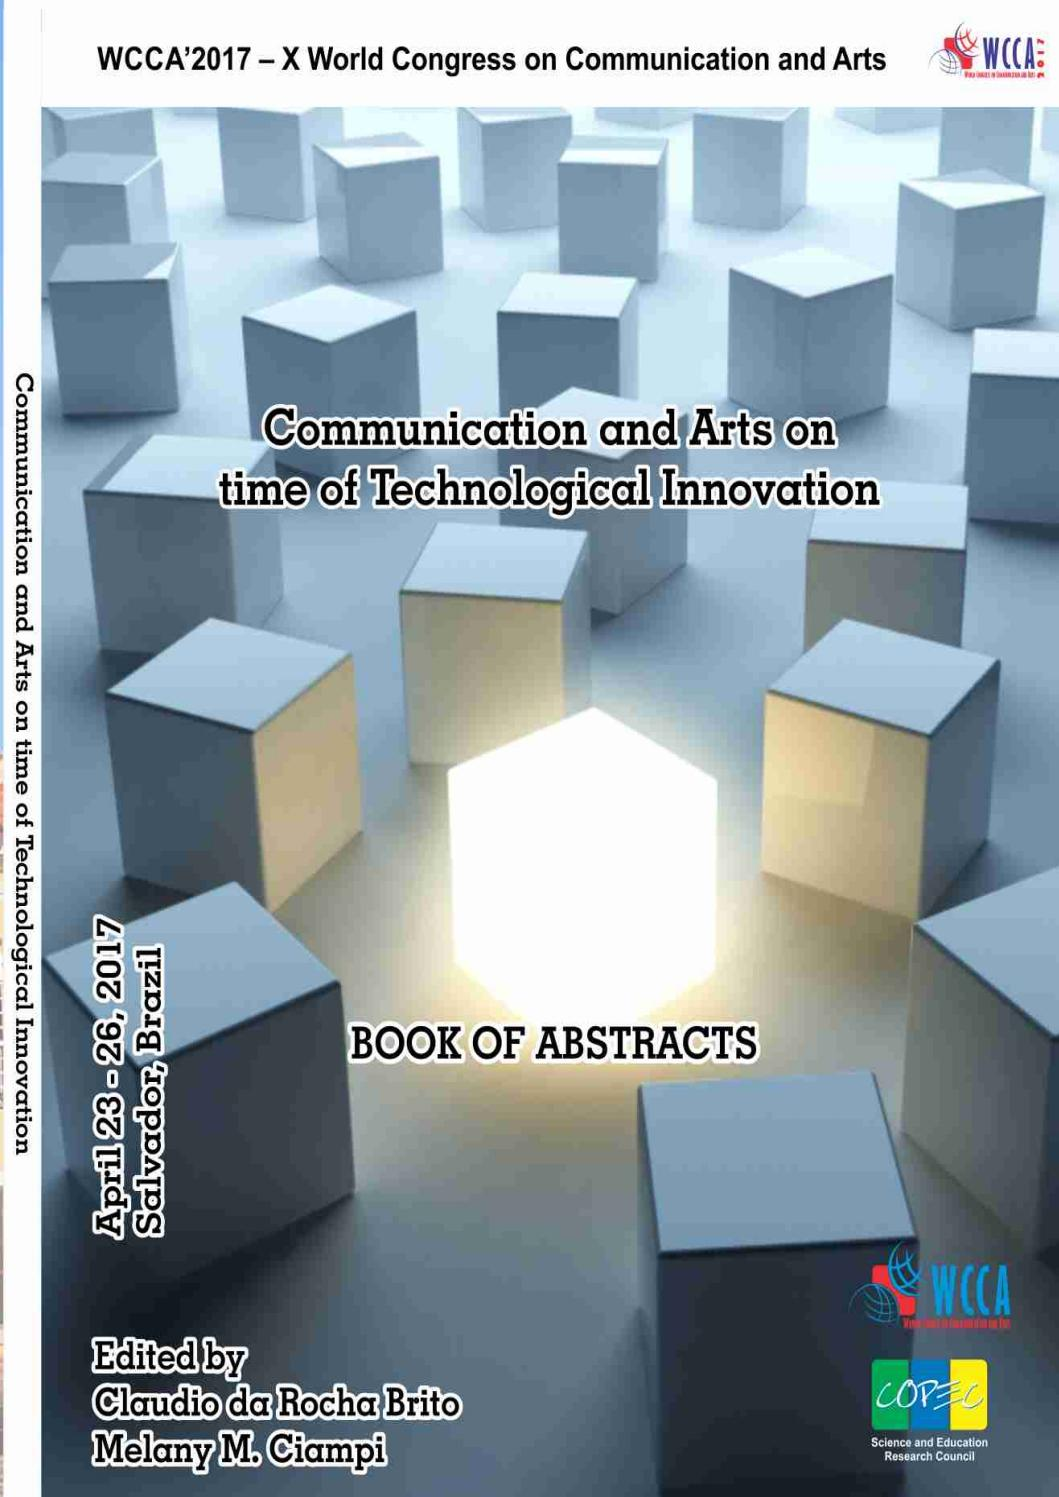 Book Of Abstract Of Wcca 2017 By Science And Education Research  # Muebles Derfan Neiva